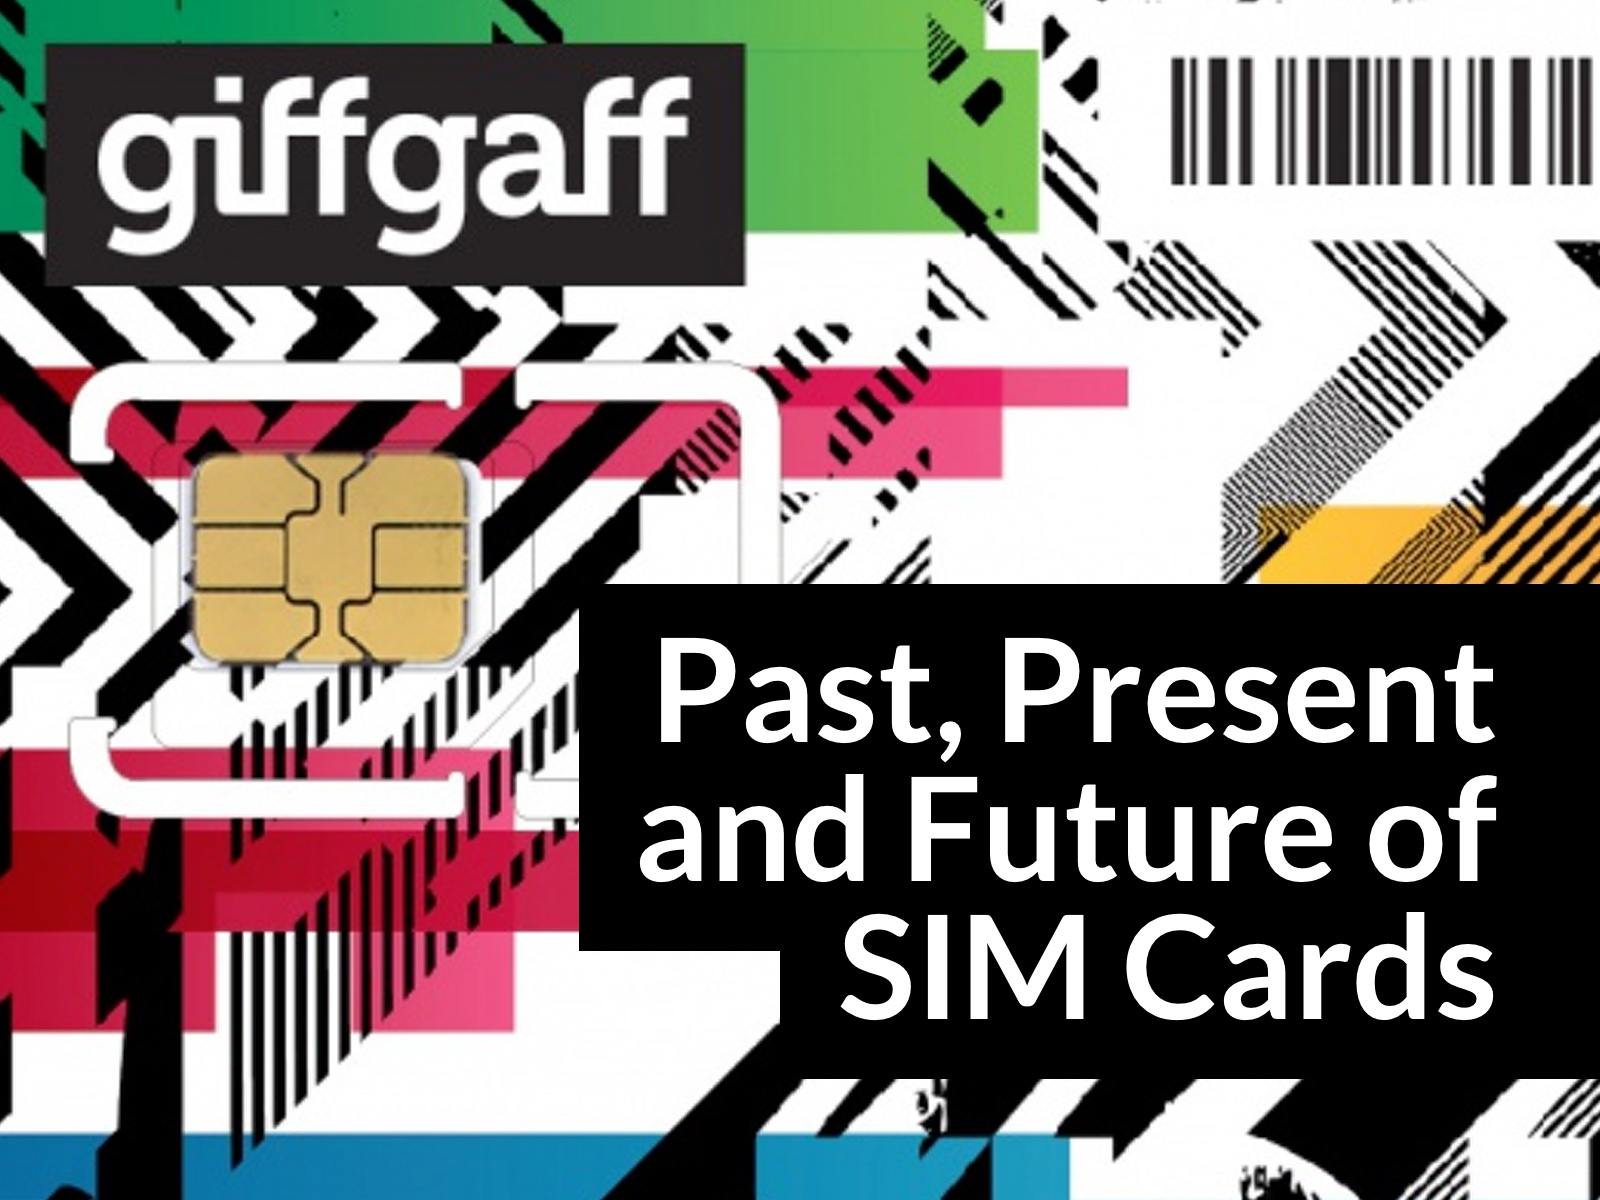 Past, Present and Future of SIM Cards